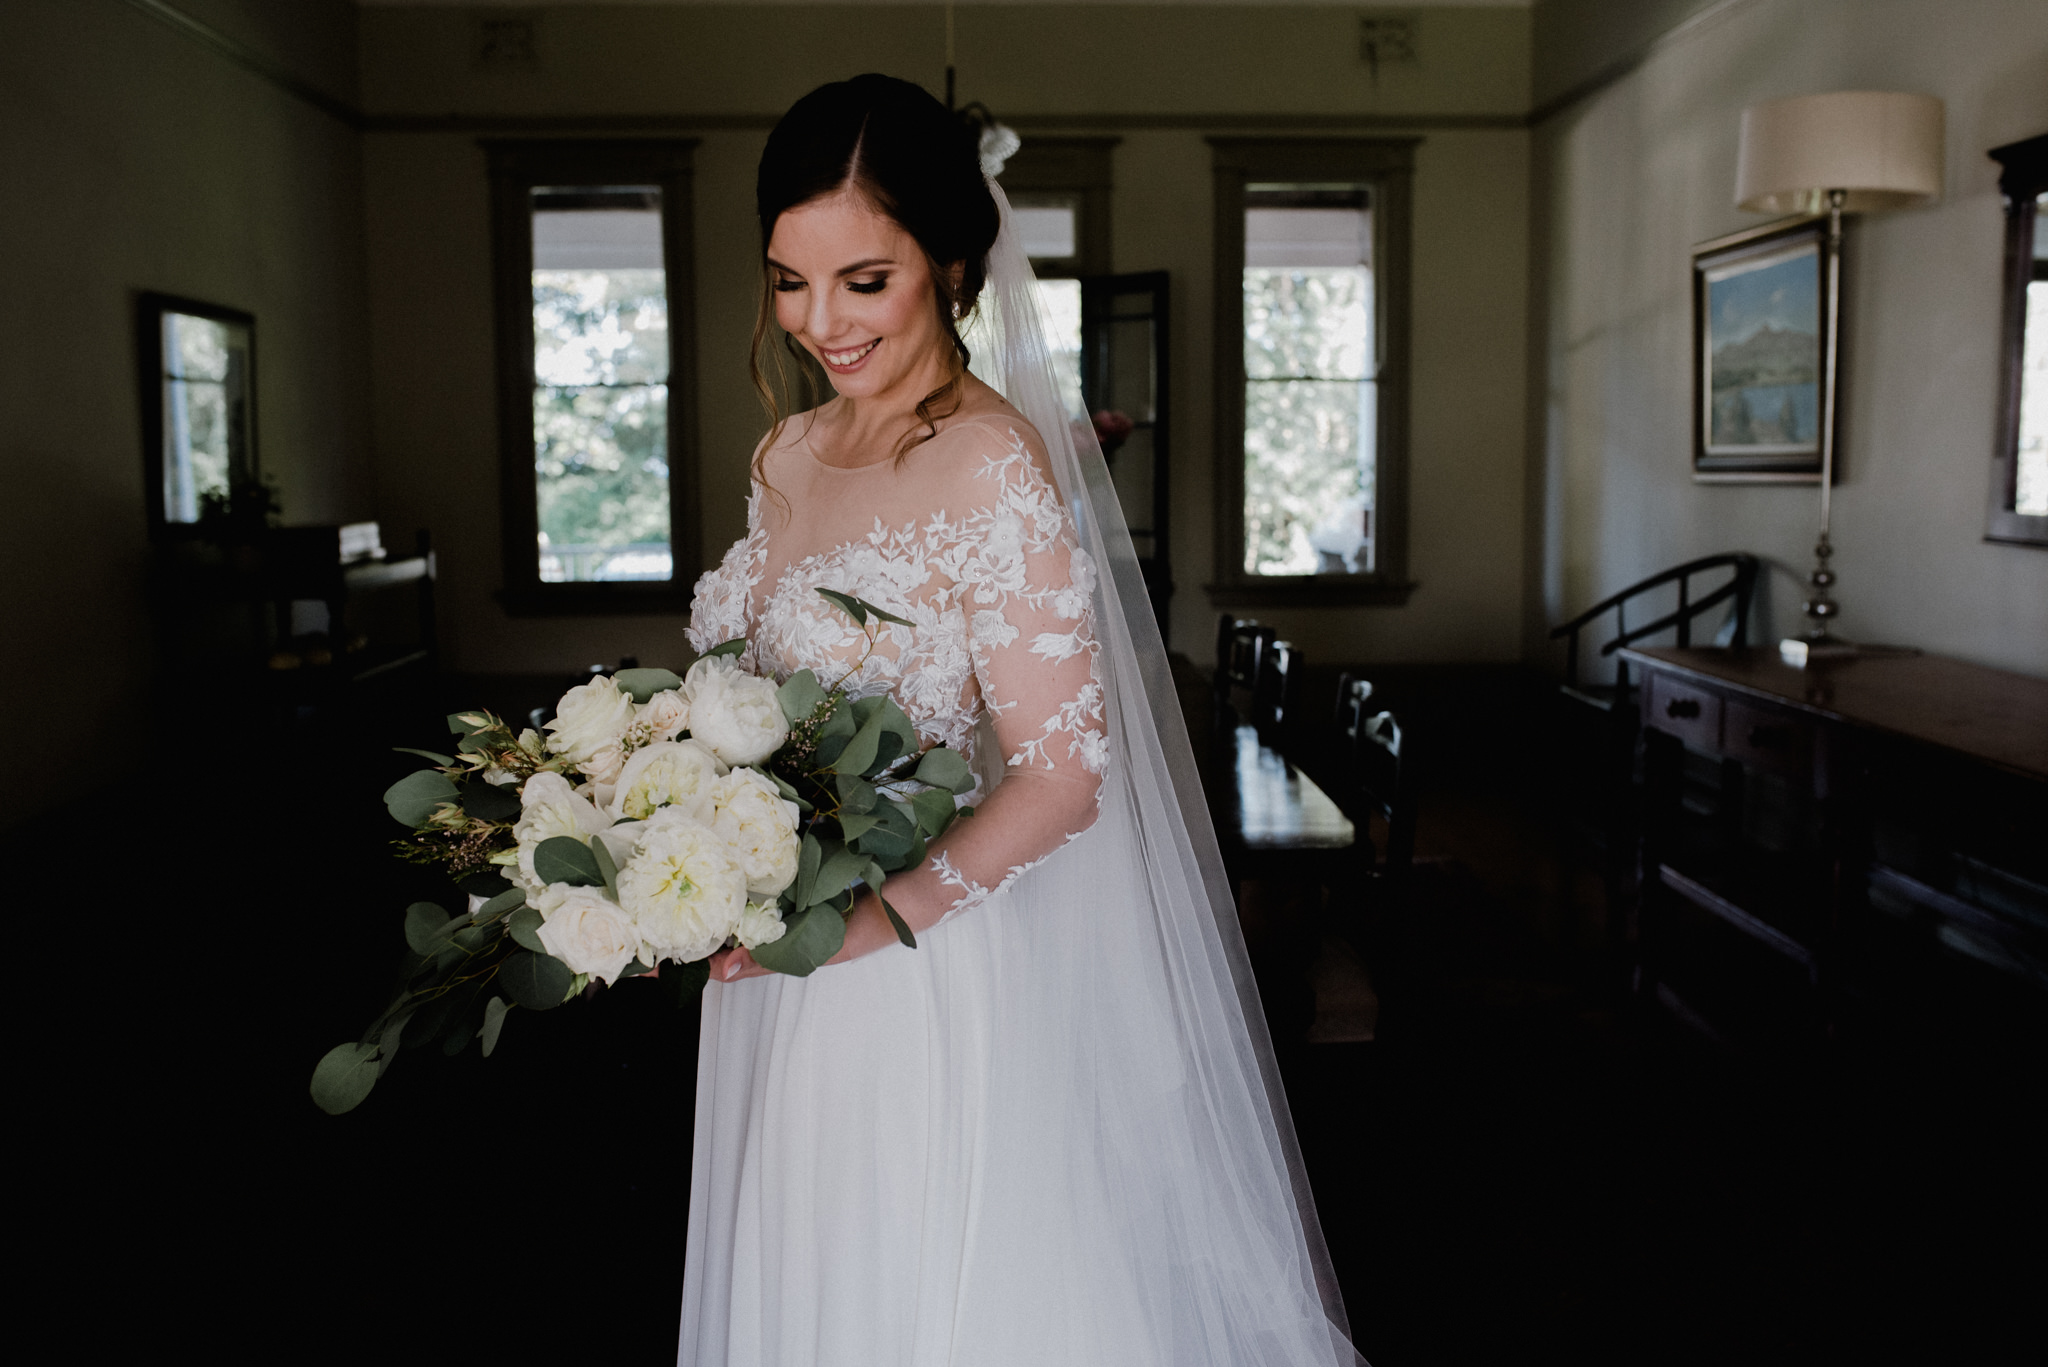 Hanrie Lues wedding dress designer